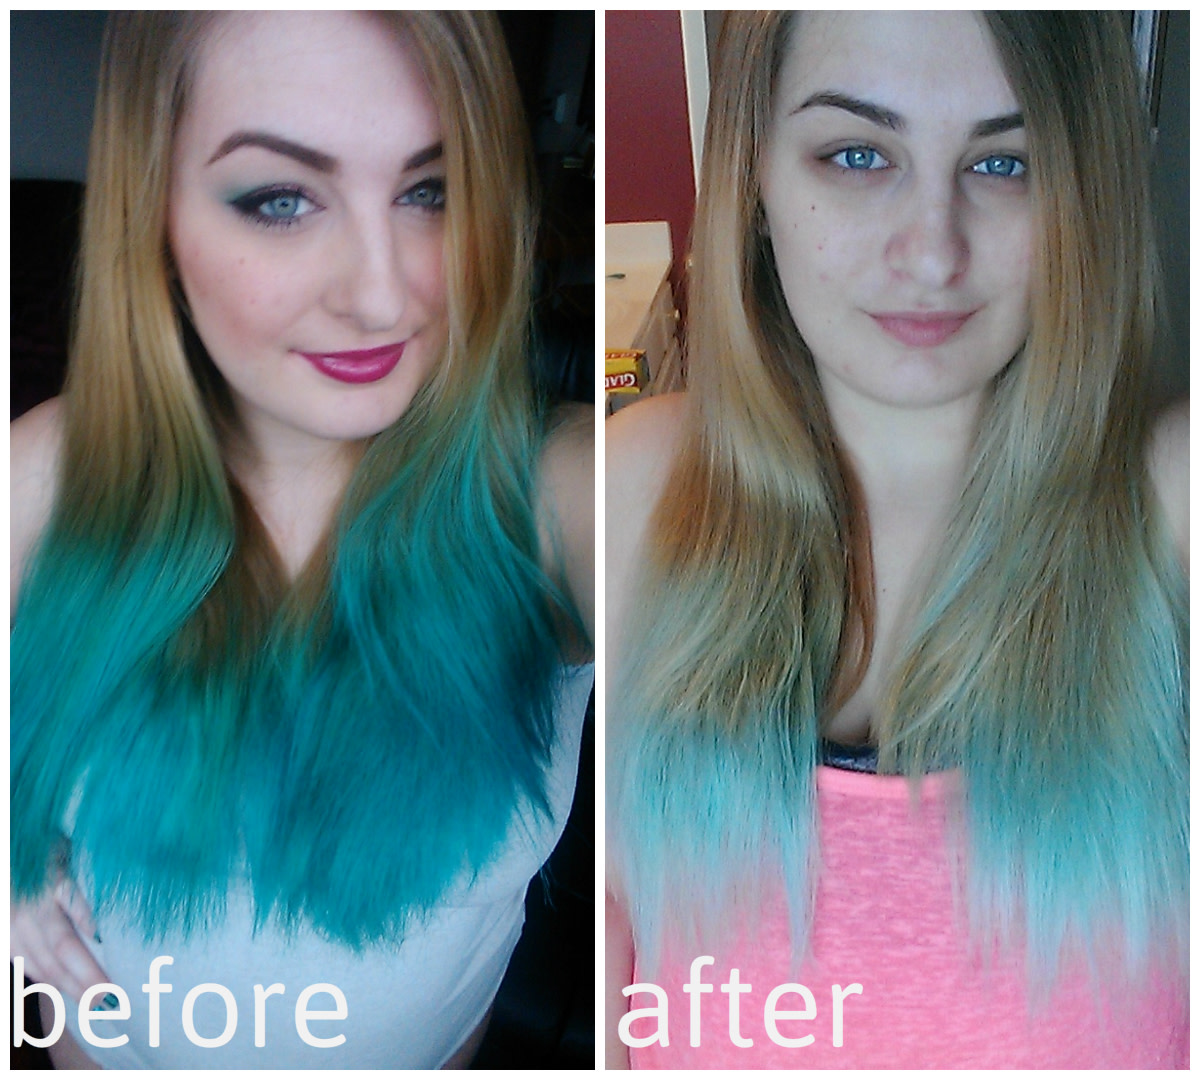 Hair Diy: How to Fade Stubborn Bright Blue Hair so You Can Dye It Again